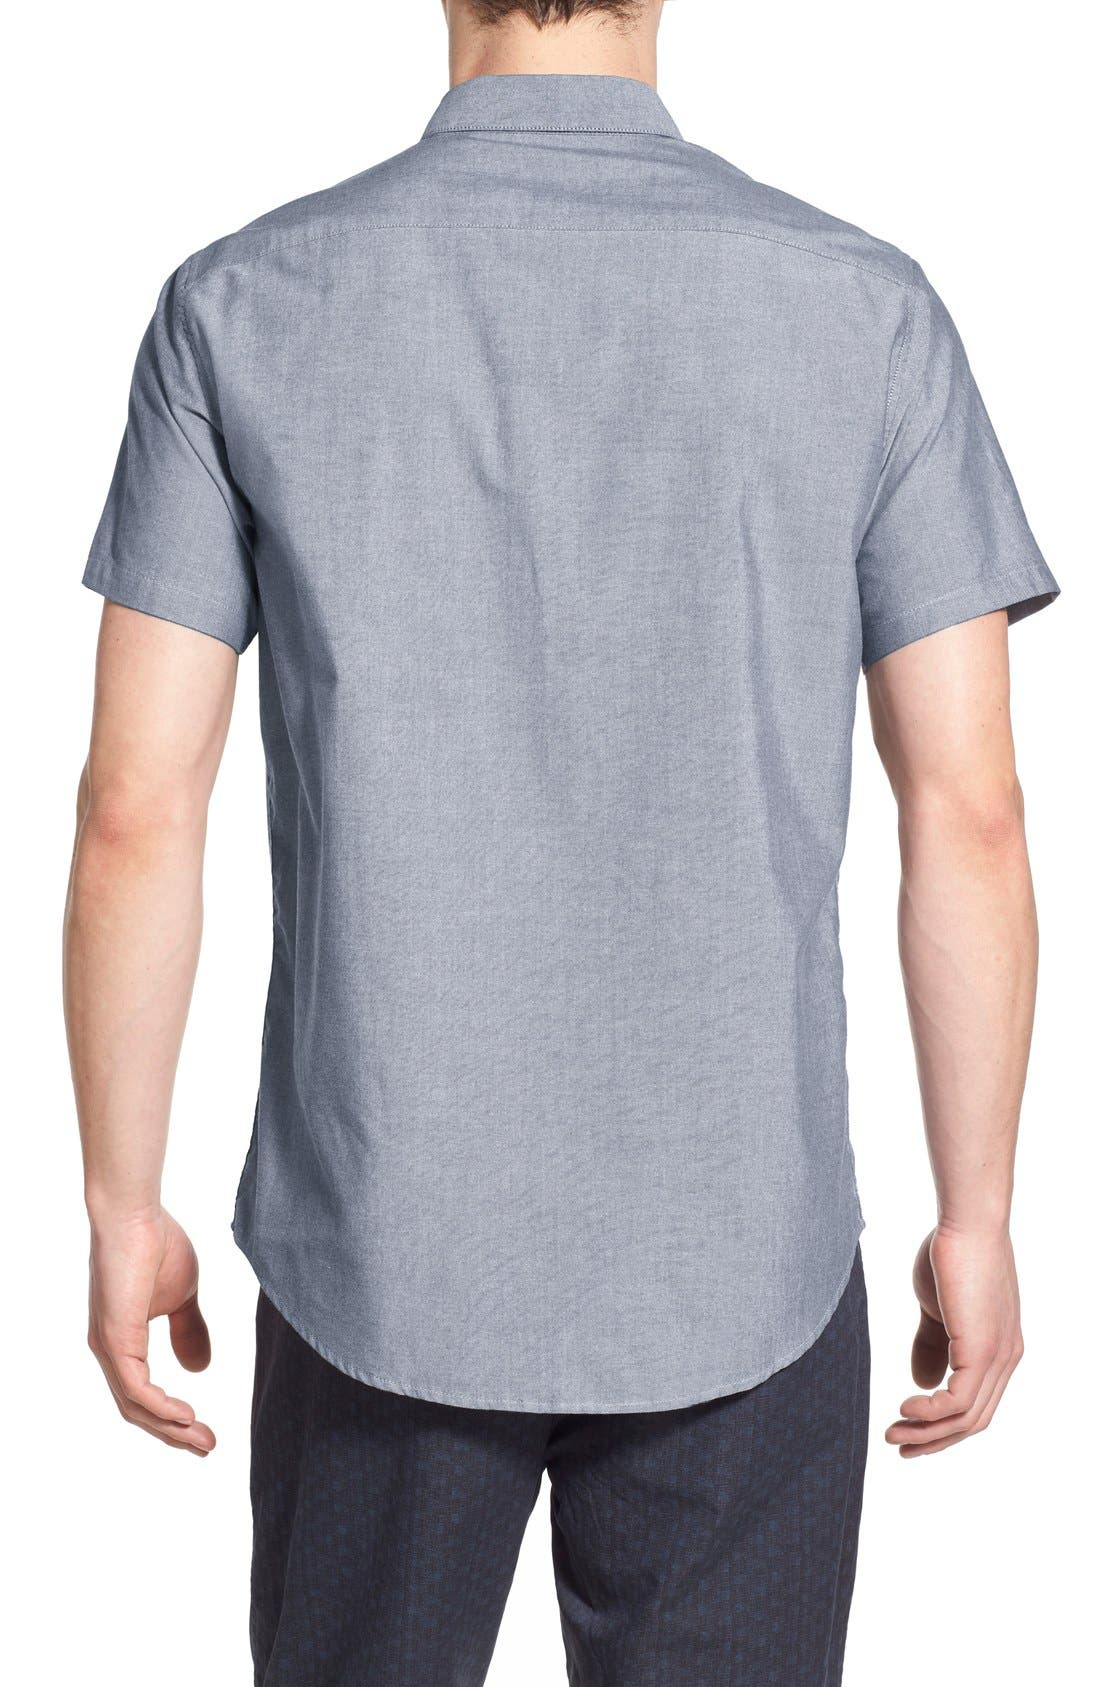 'That'll Do' Slim Fit Short Sleeve Oxford Shirt,                             Alternate thumbnail 3, color,                             DISTANT BLUE